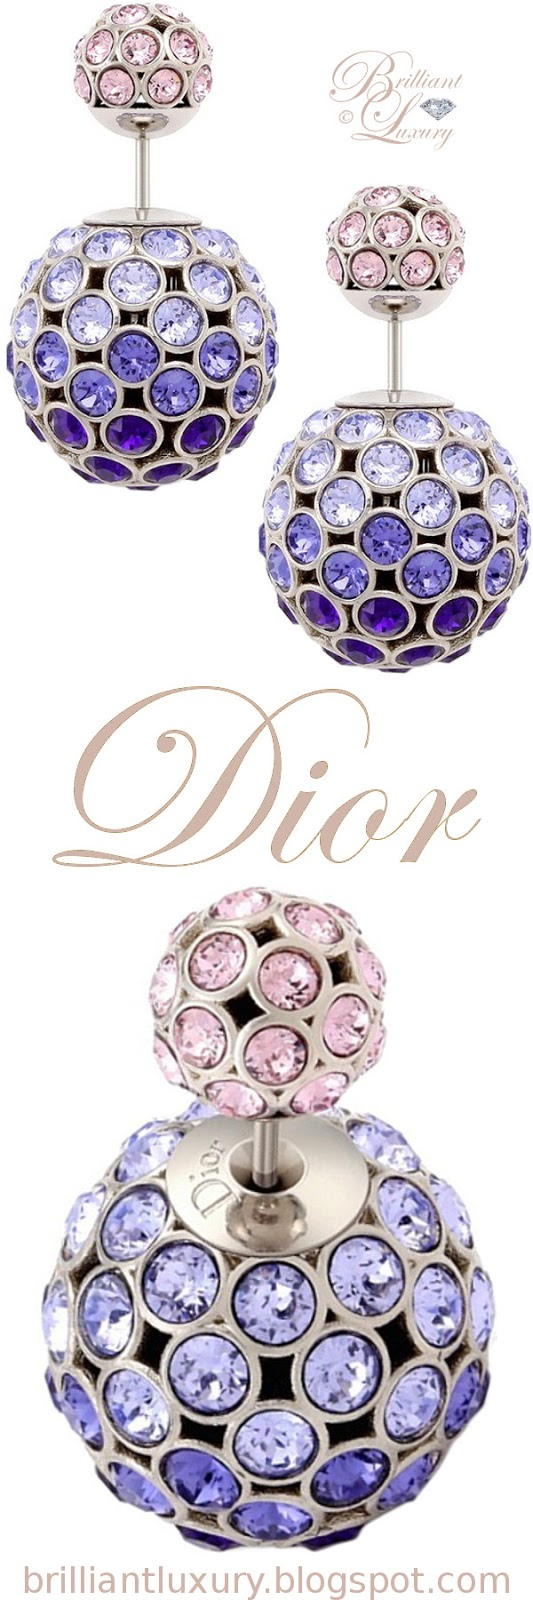 Brilliant Luxury ♦ Dior 'Mise en Dior' tribal-inspired earrings in pink and purple